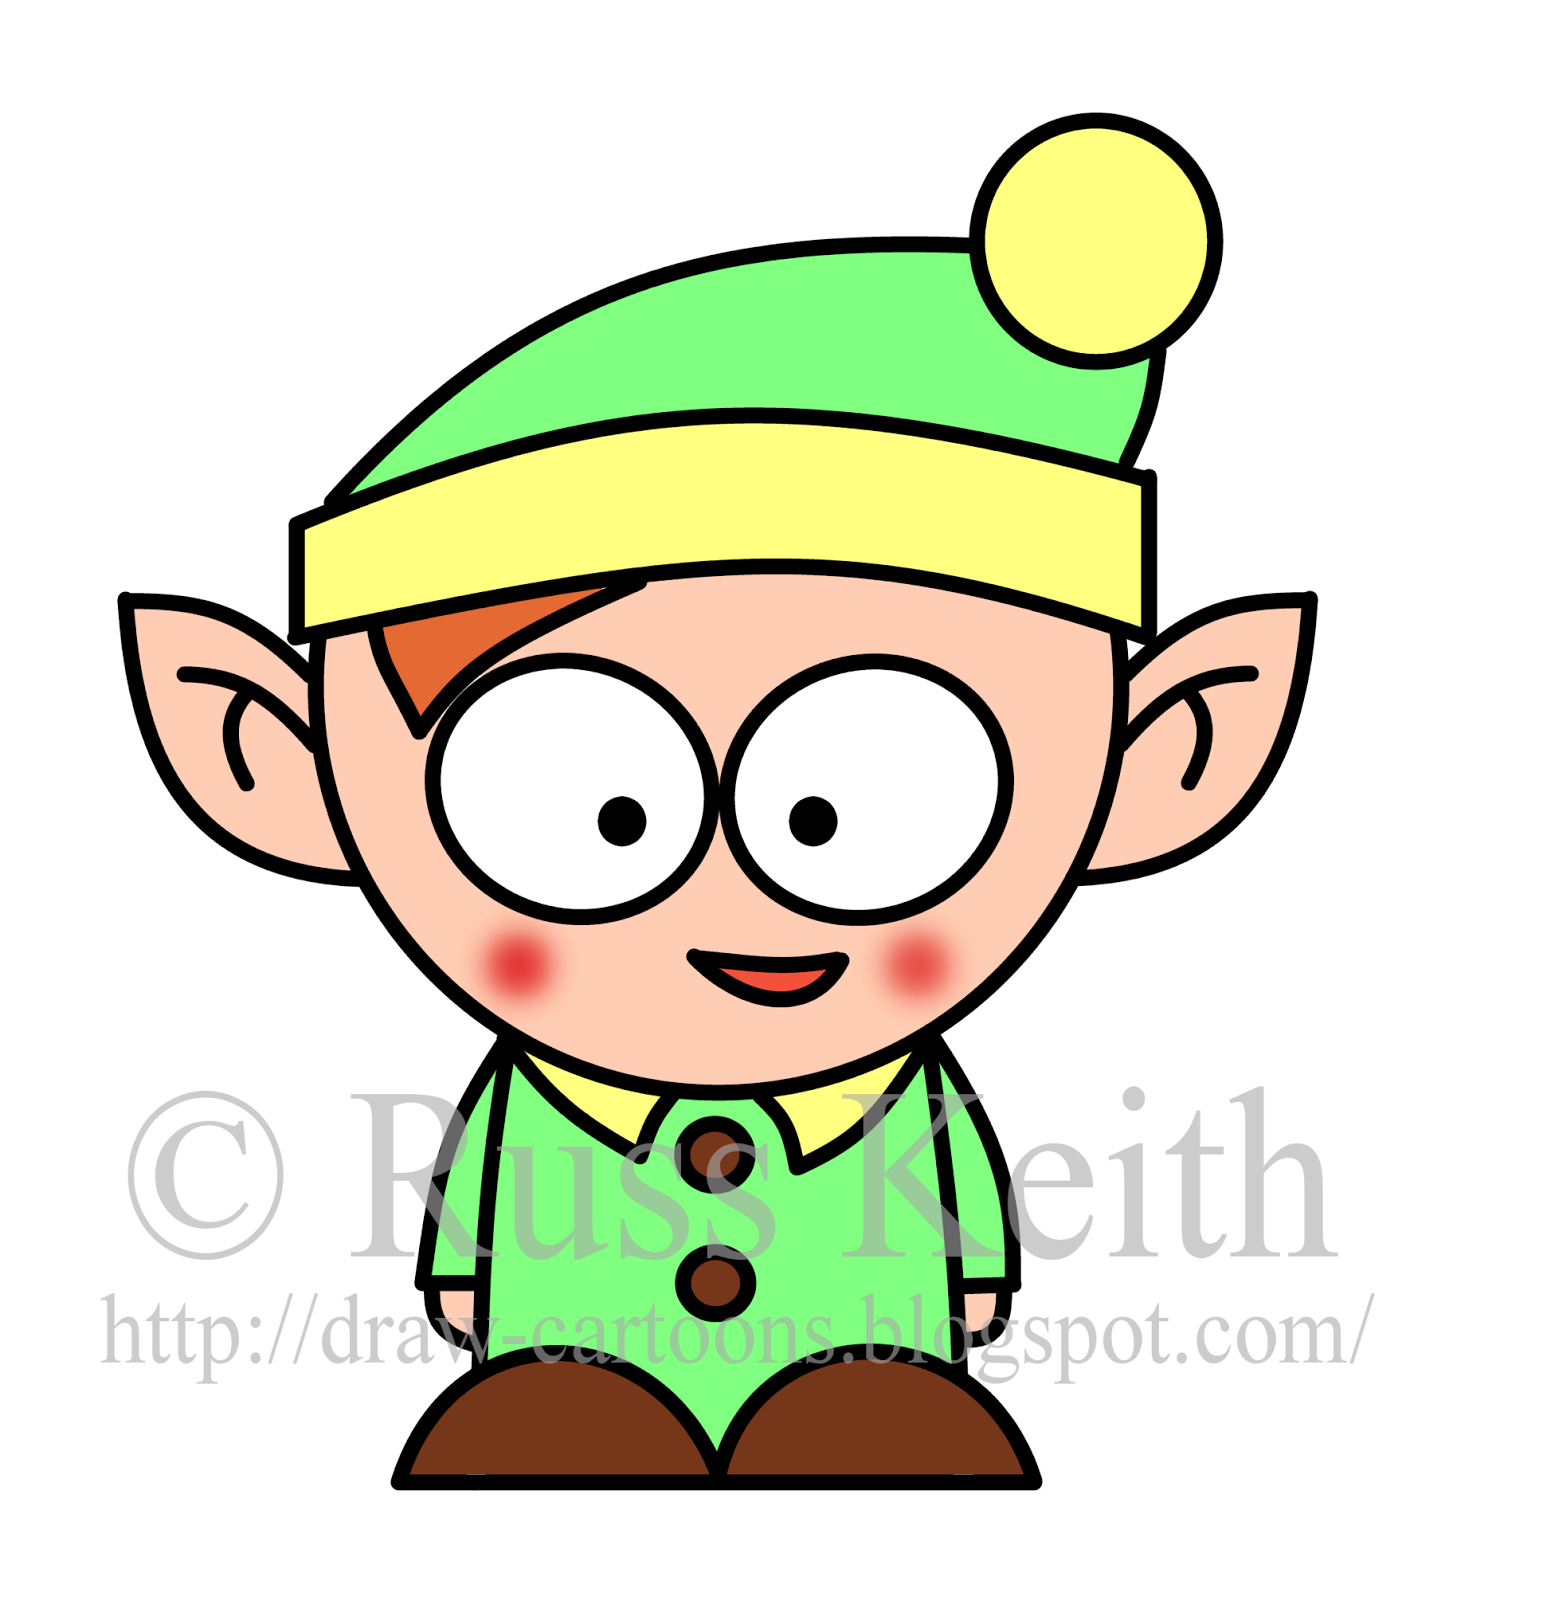 How To Draw Cartoons Christmas Elf Cartoon drawings